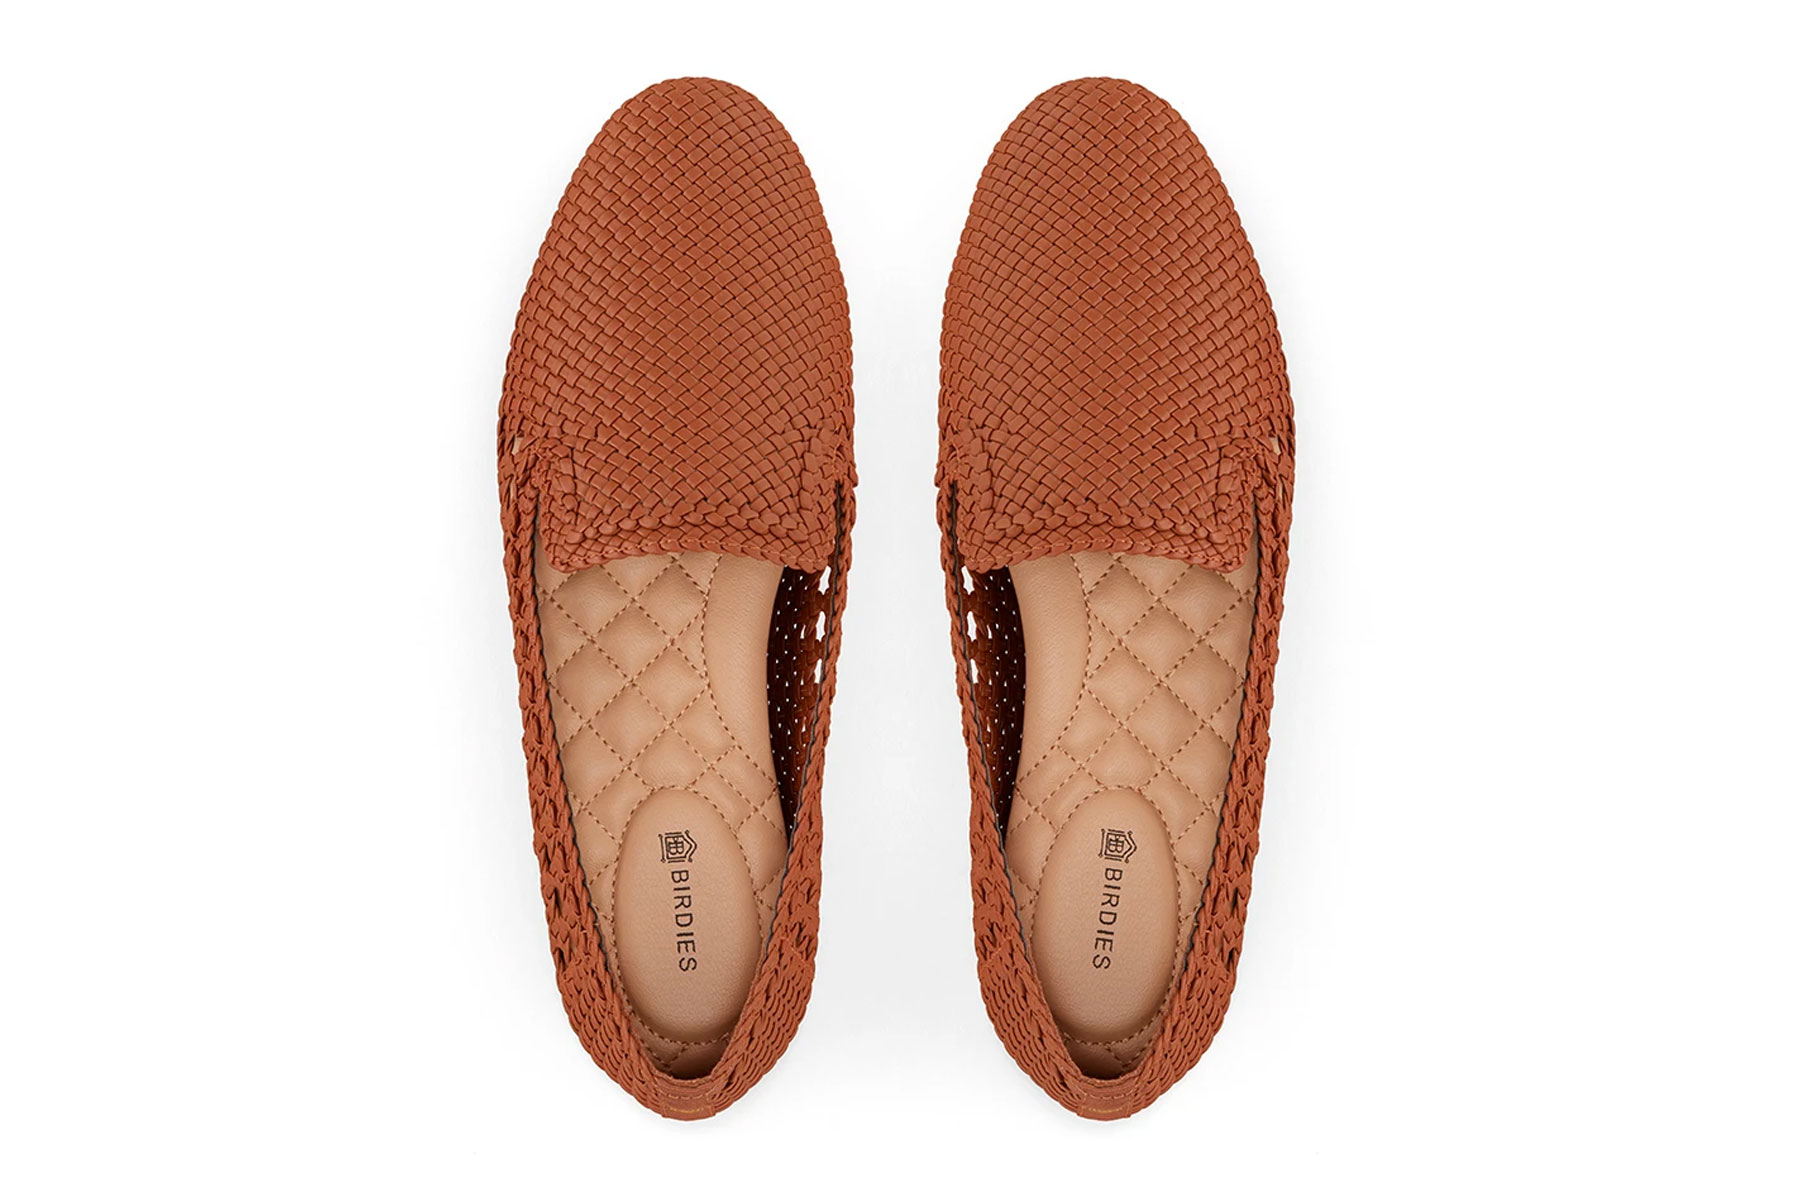 Brown woven flat slip on shoes